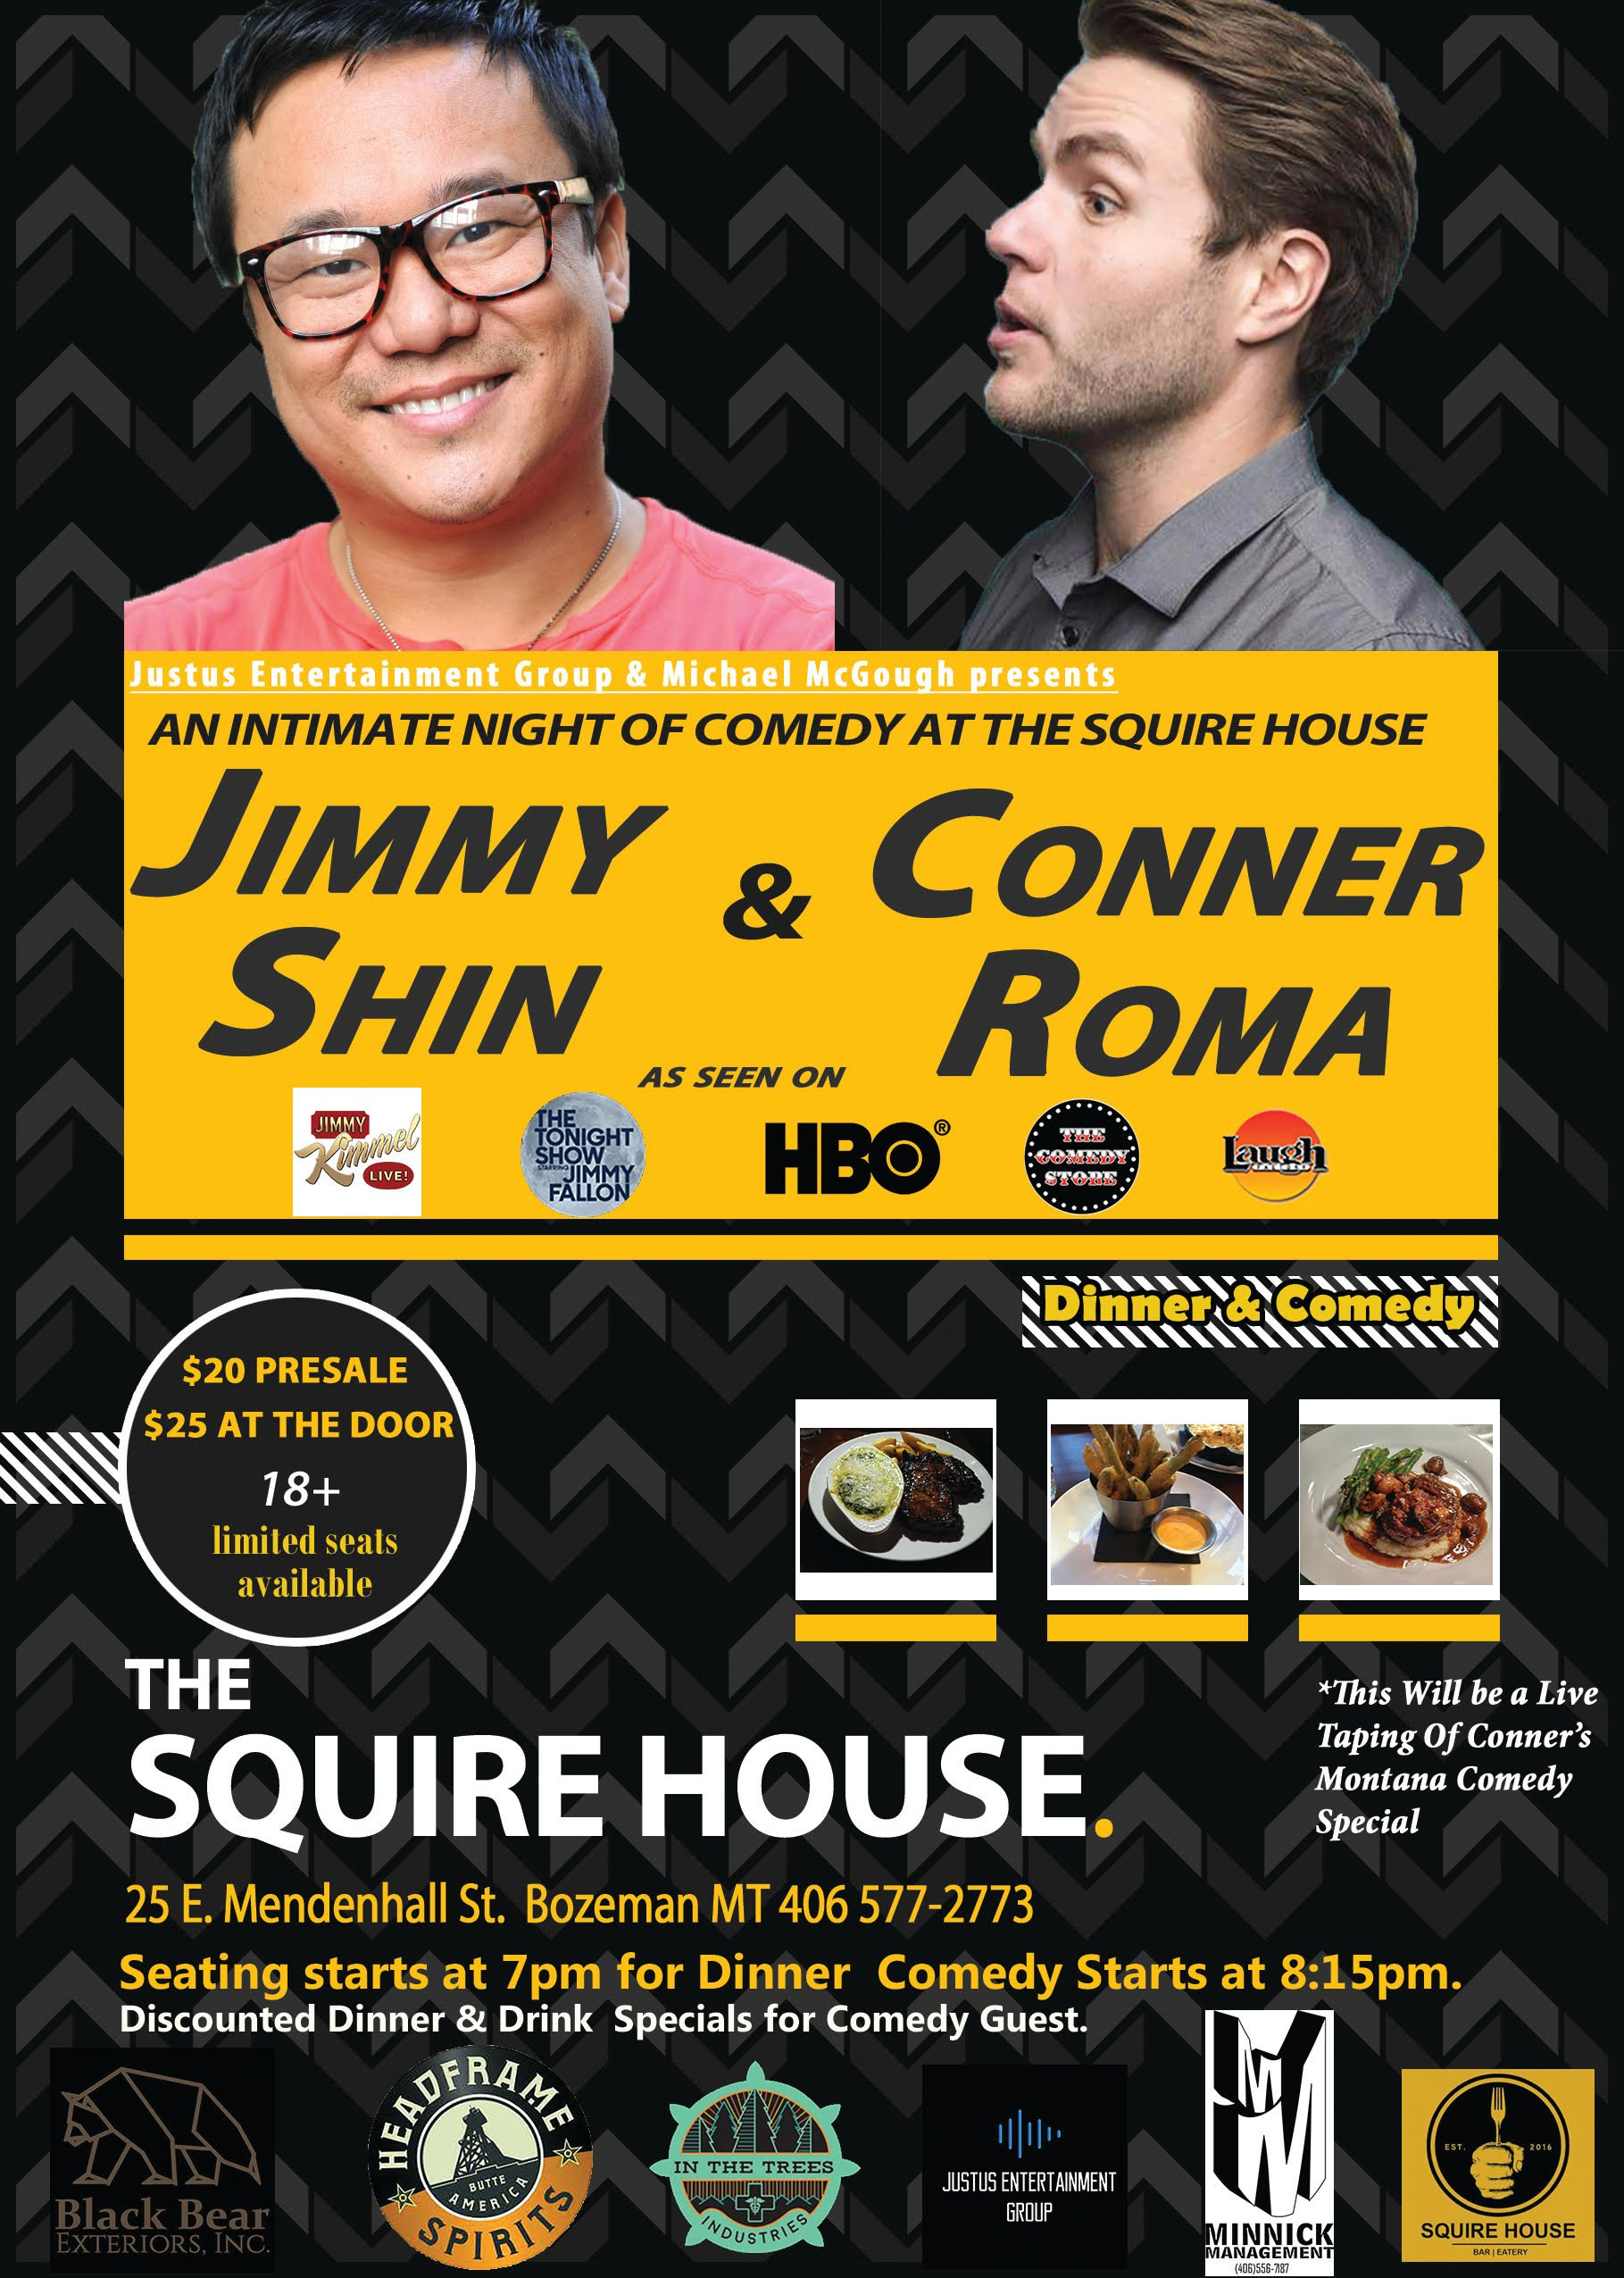 ExpiredNight of Comedy with Jimmy Shin & Conner Roma